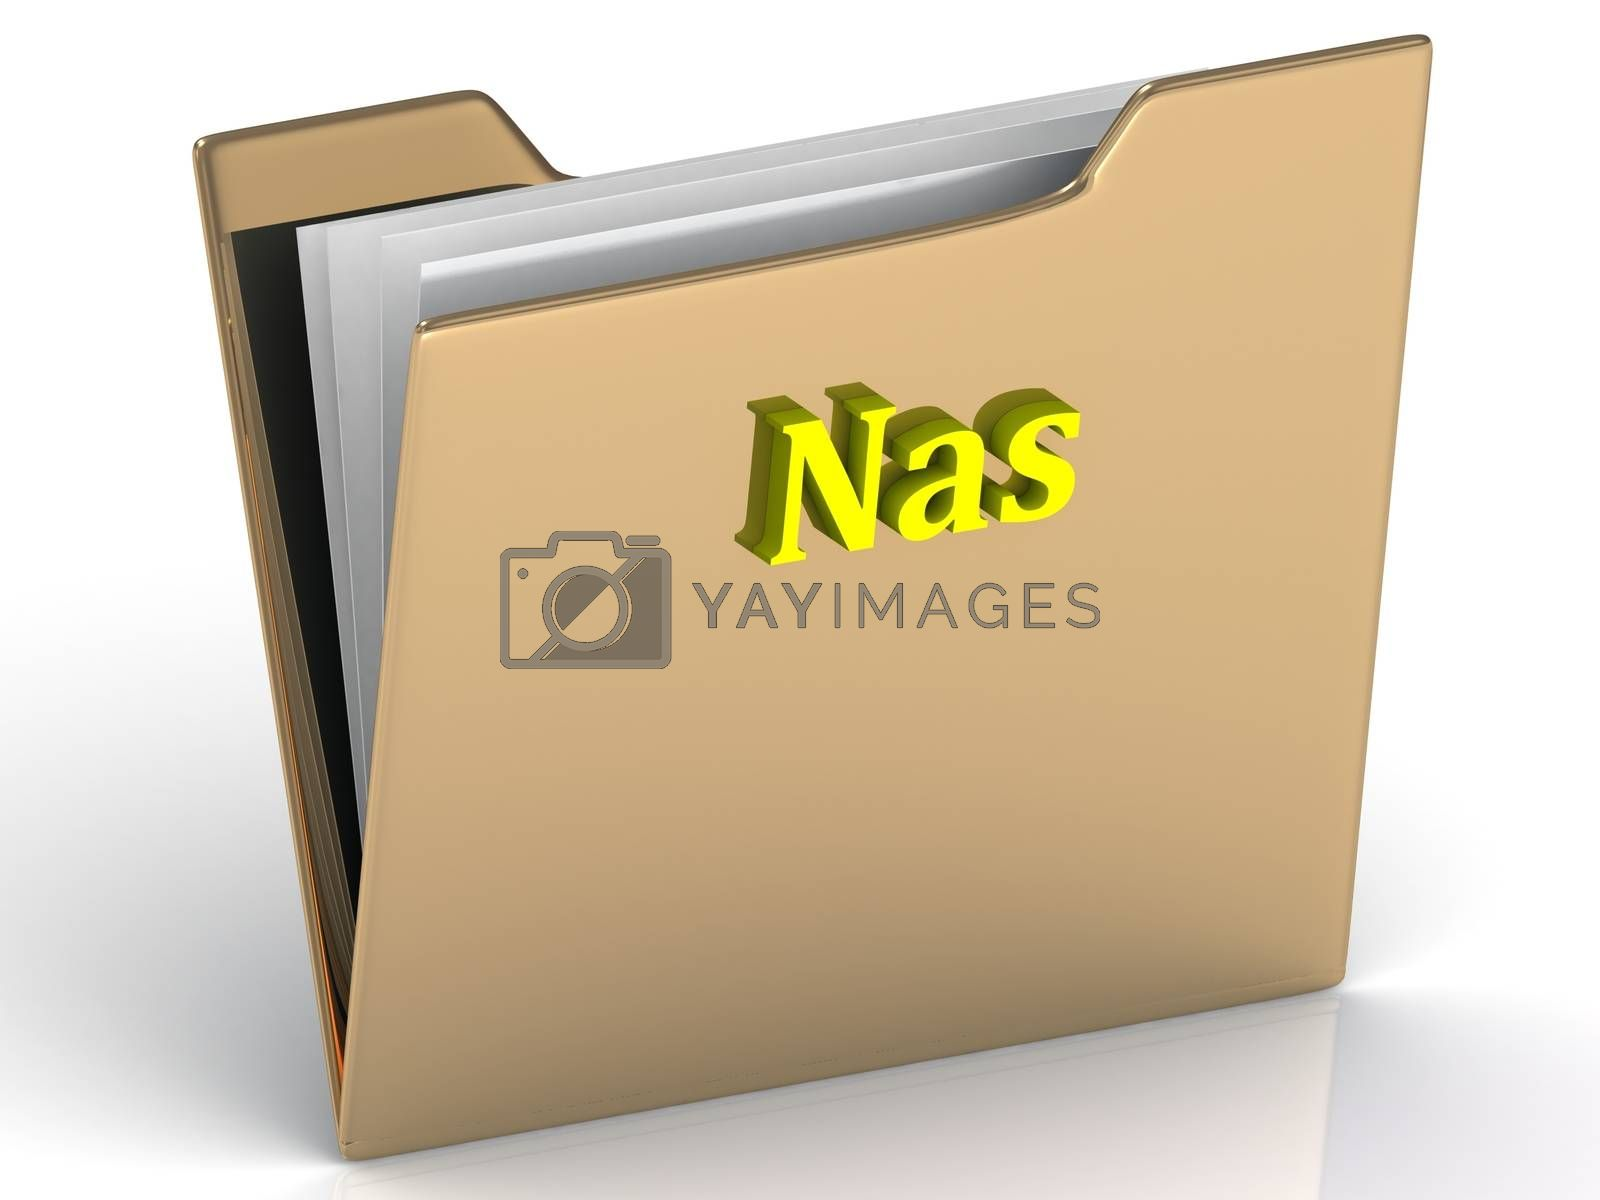 Nas- bright color letters on a gold folder on a white background